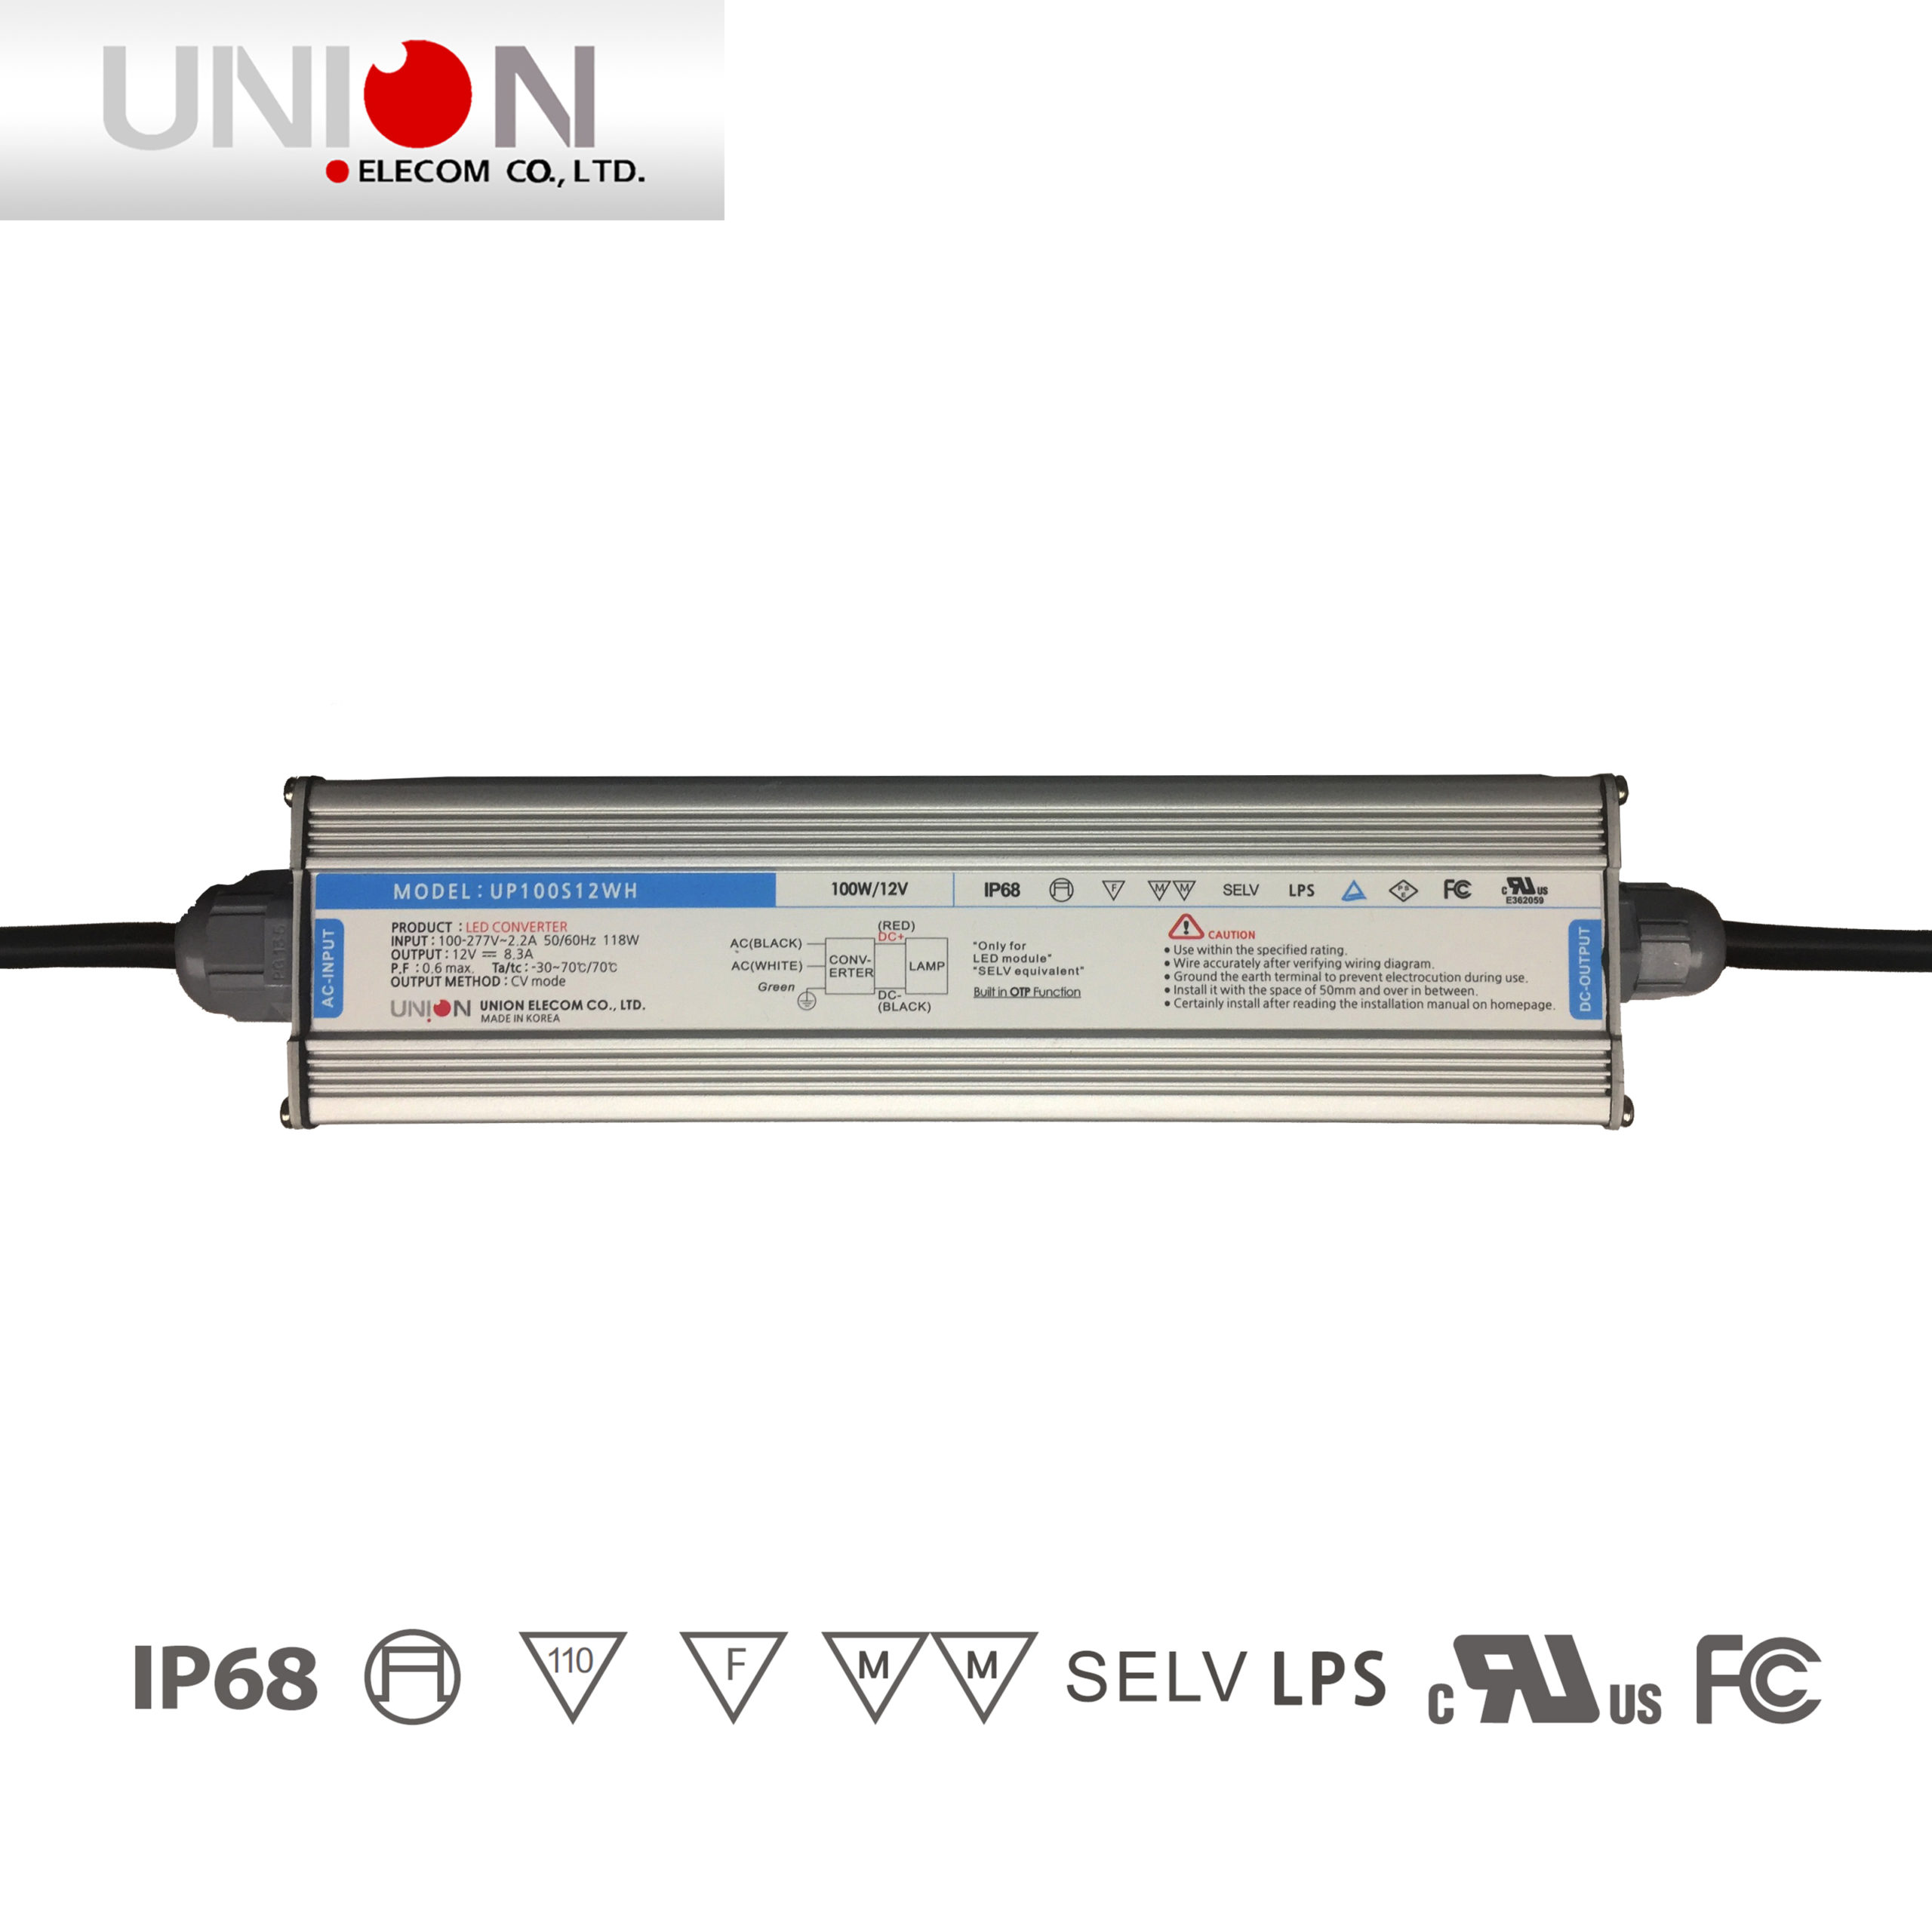 12v 100w Outdoor Led Power Supply Up100s12wh Union